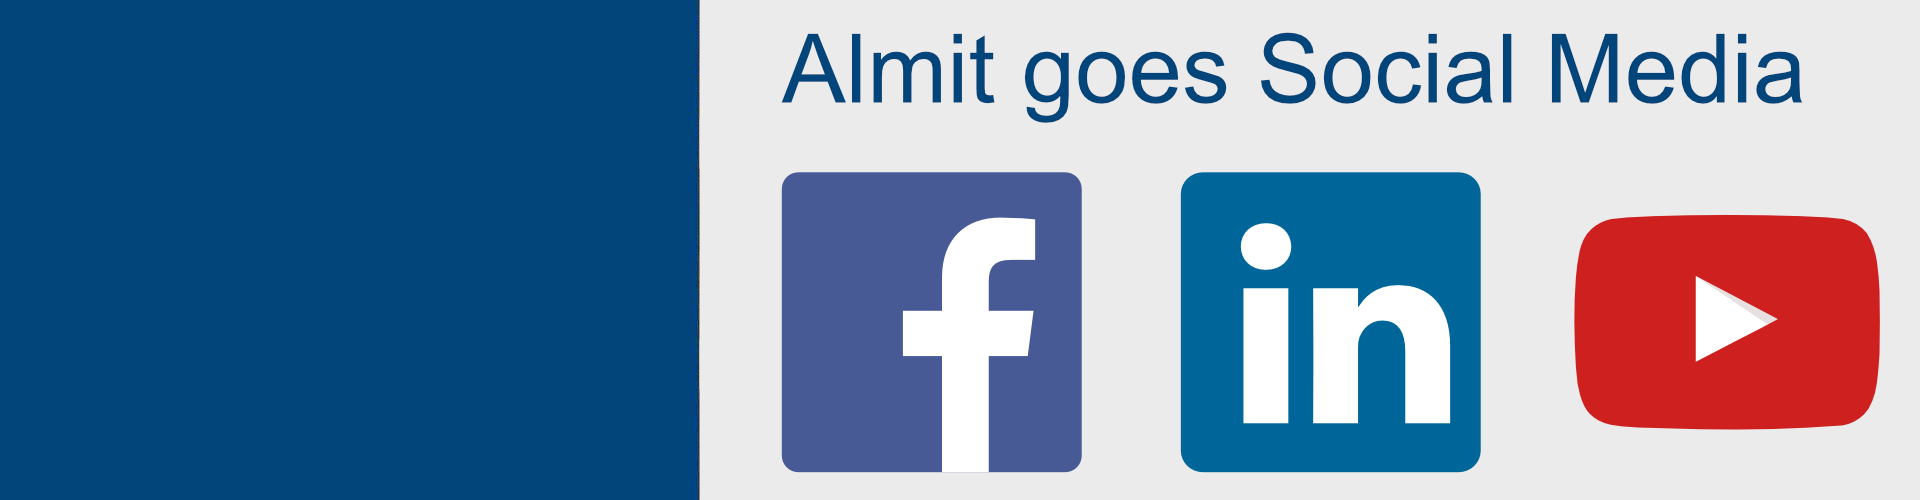 Almit goes Social Media!